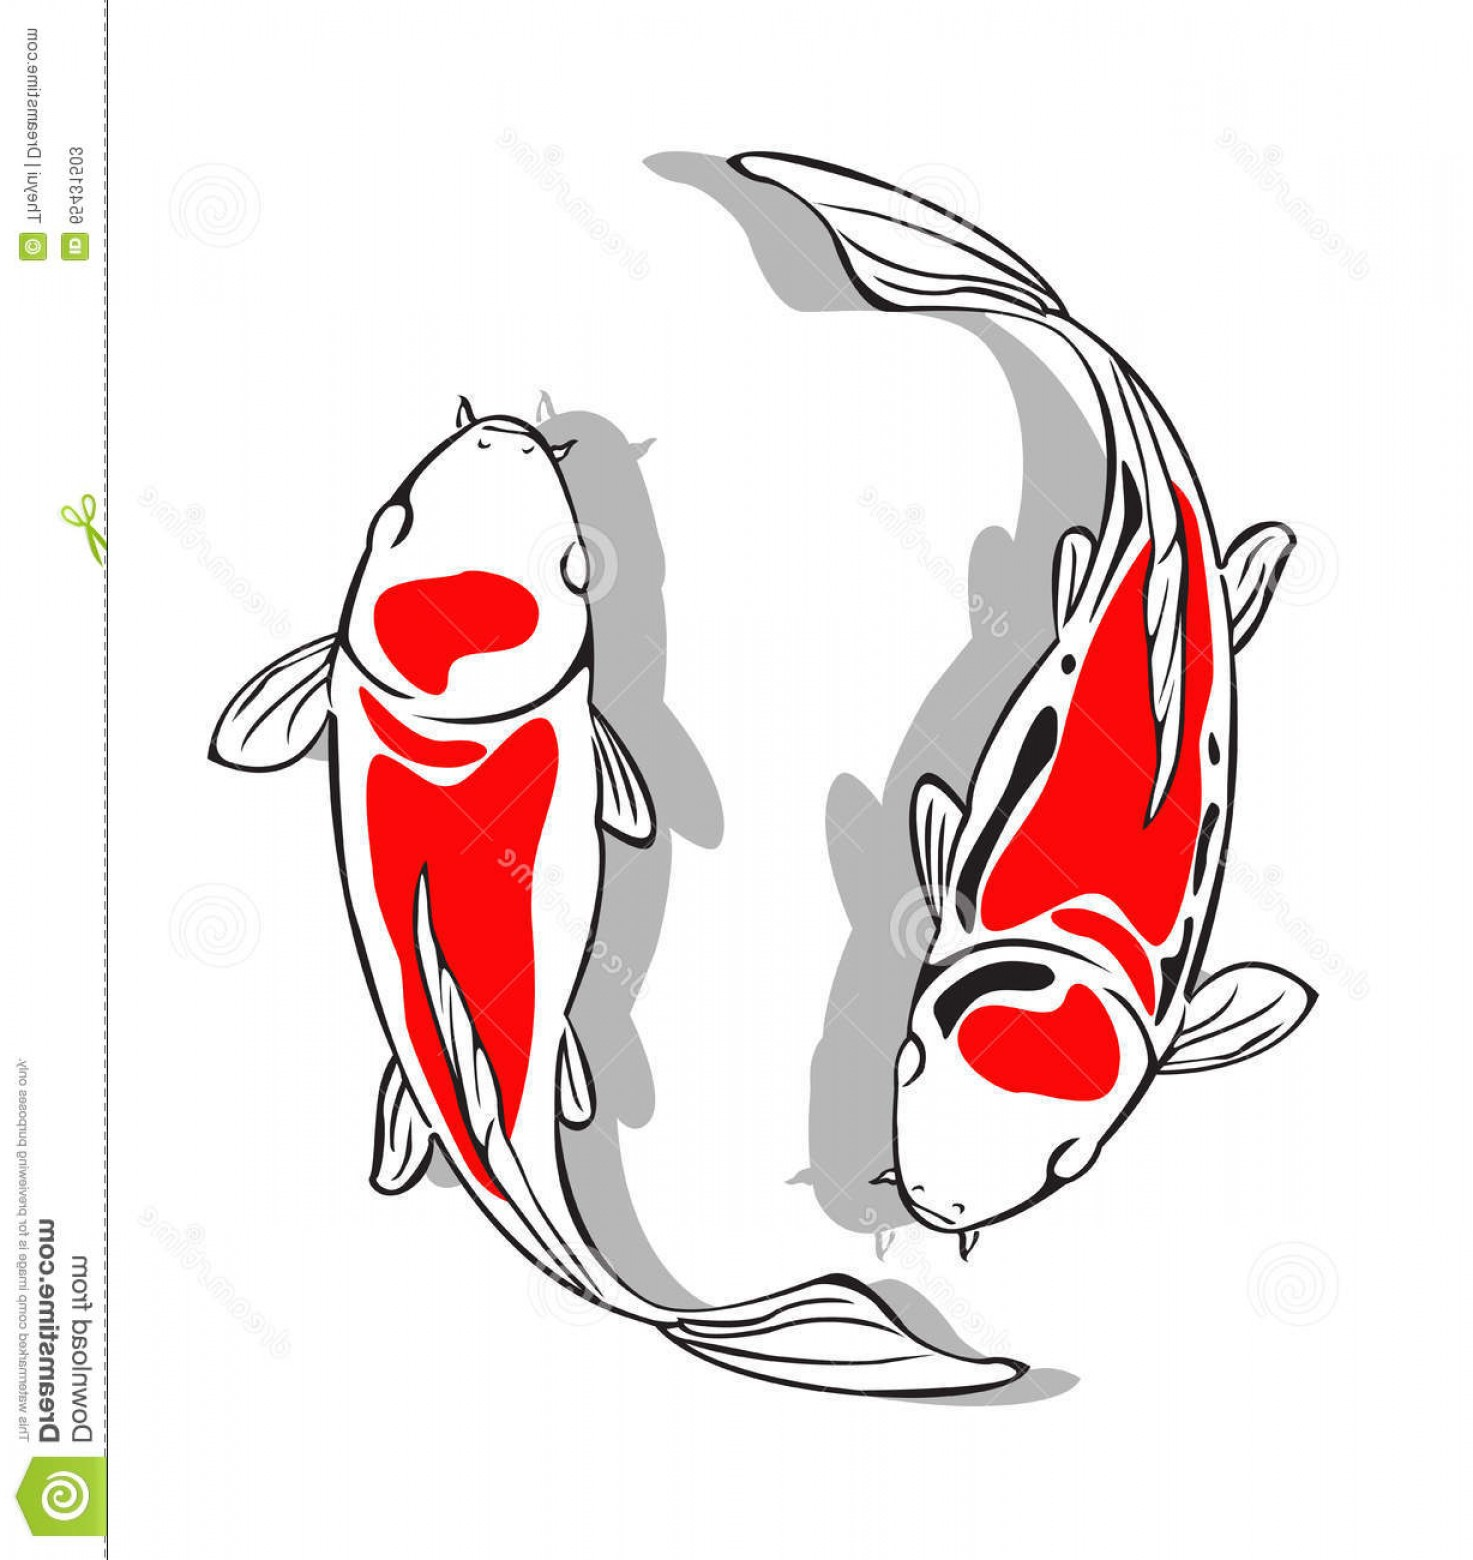 Koi Vector: Stock Illustration Koi Fish Vector Design Create Illustration Image